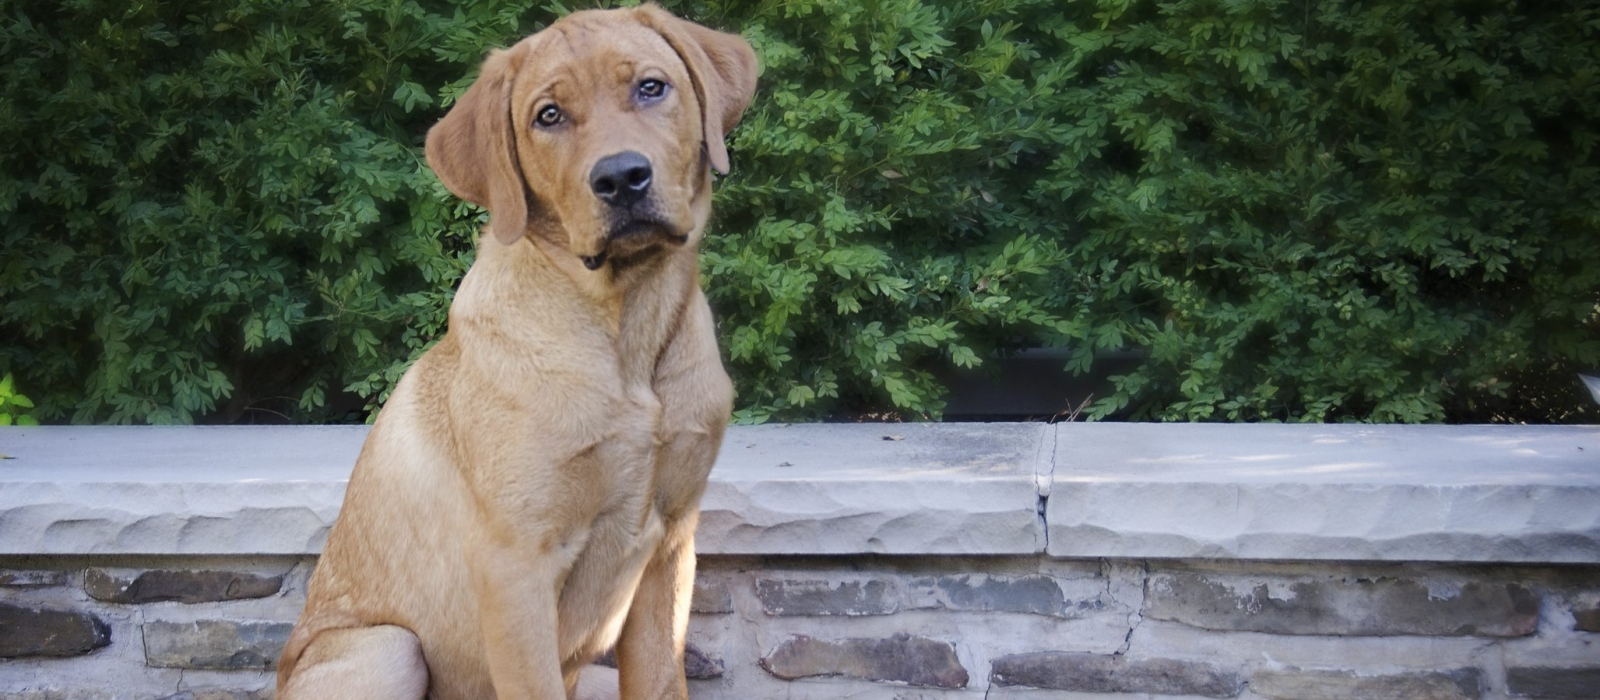 Yellow Lab Dogs For Sale Fox Red Labrador Retriever Puppies For Sale Greenfield Puppies